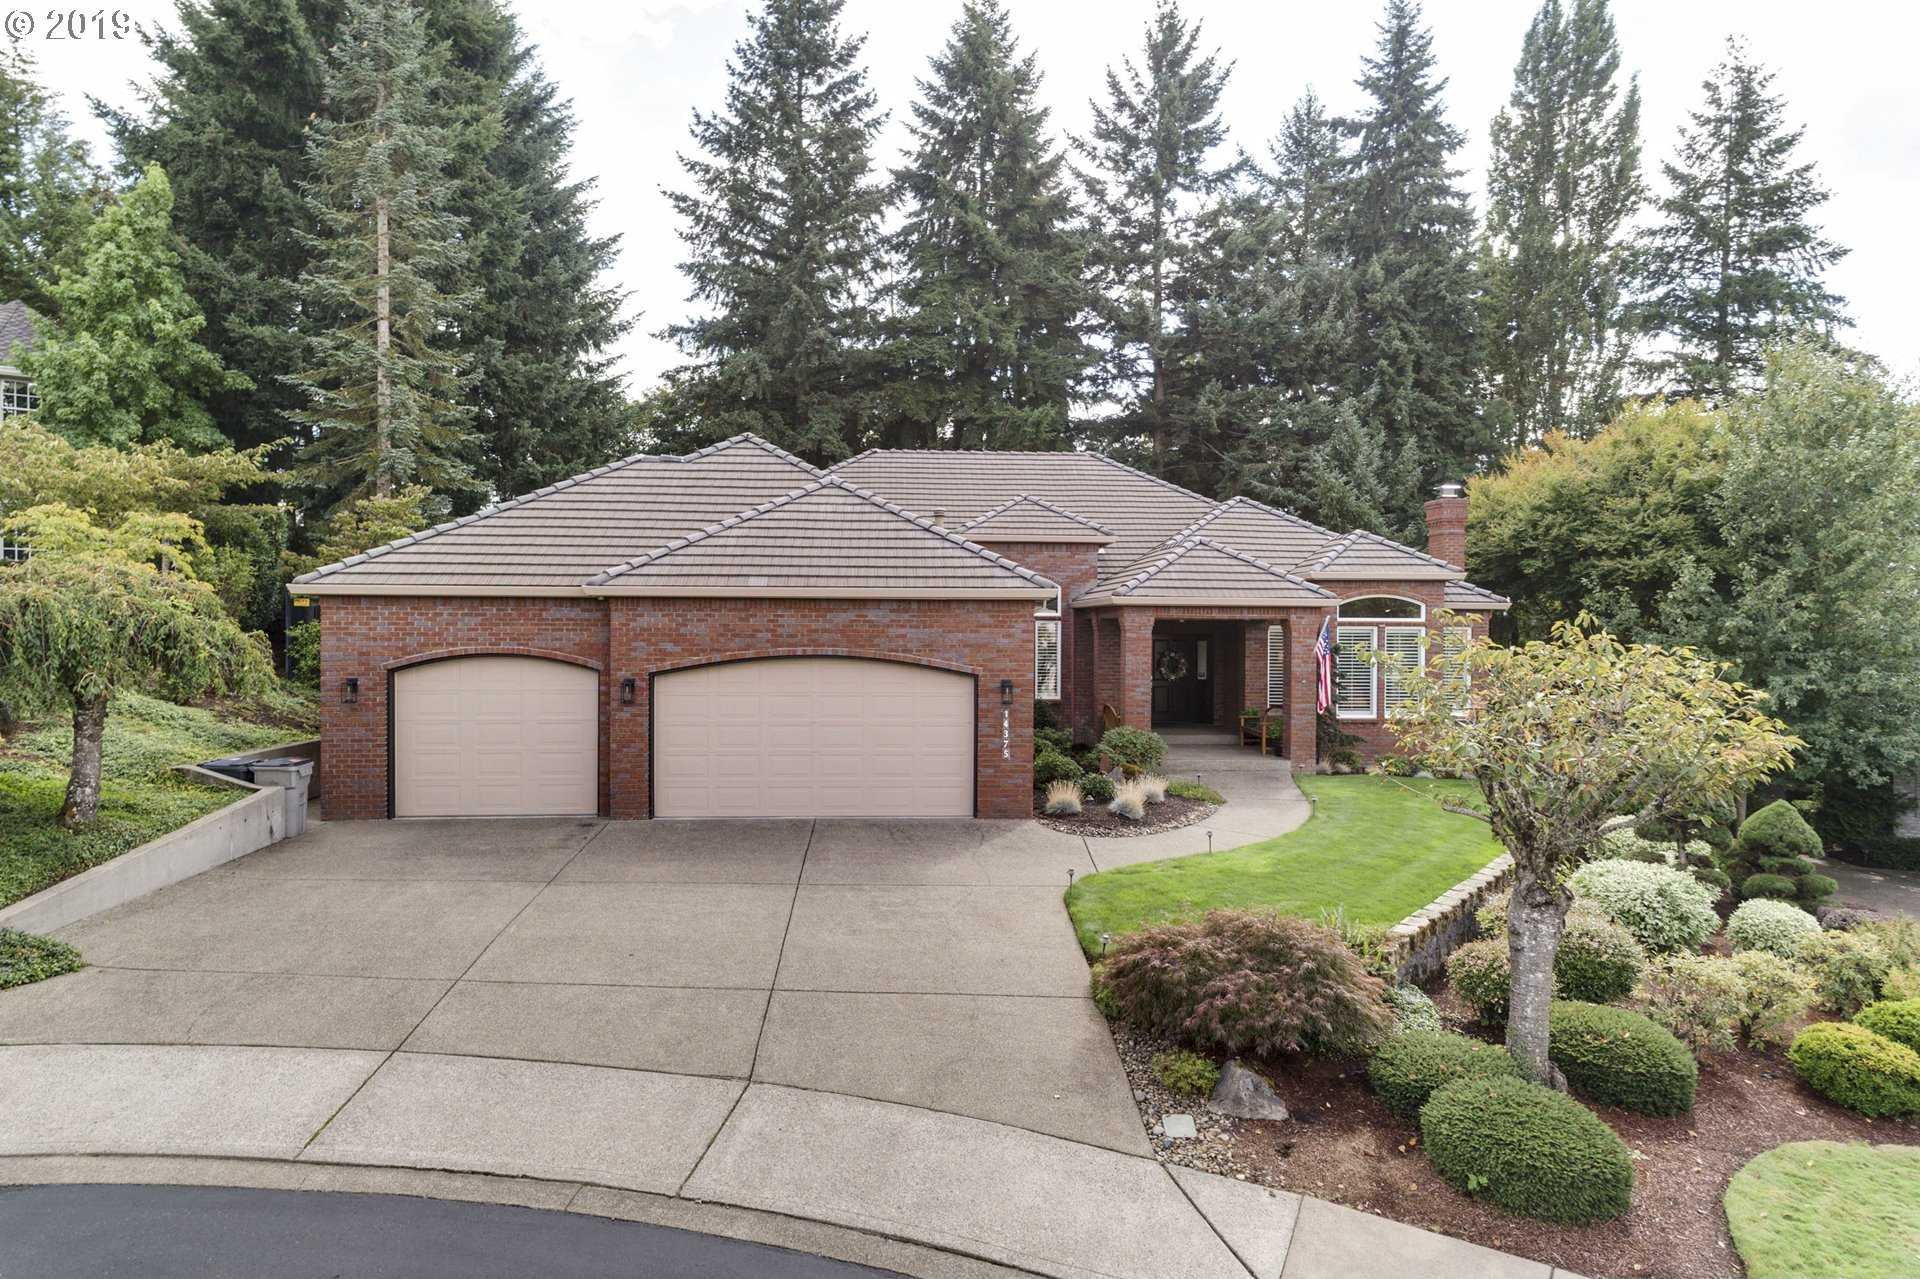 $1,045,000 - 4Br/3Ba -  for Sale in Koven Heights, Tigard